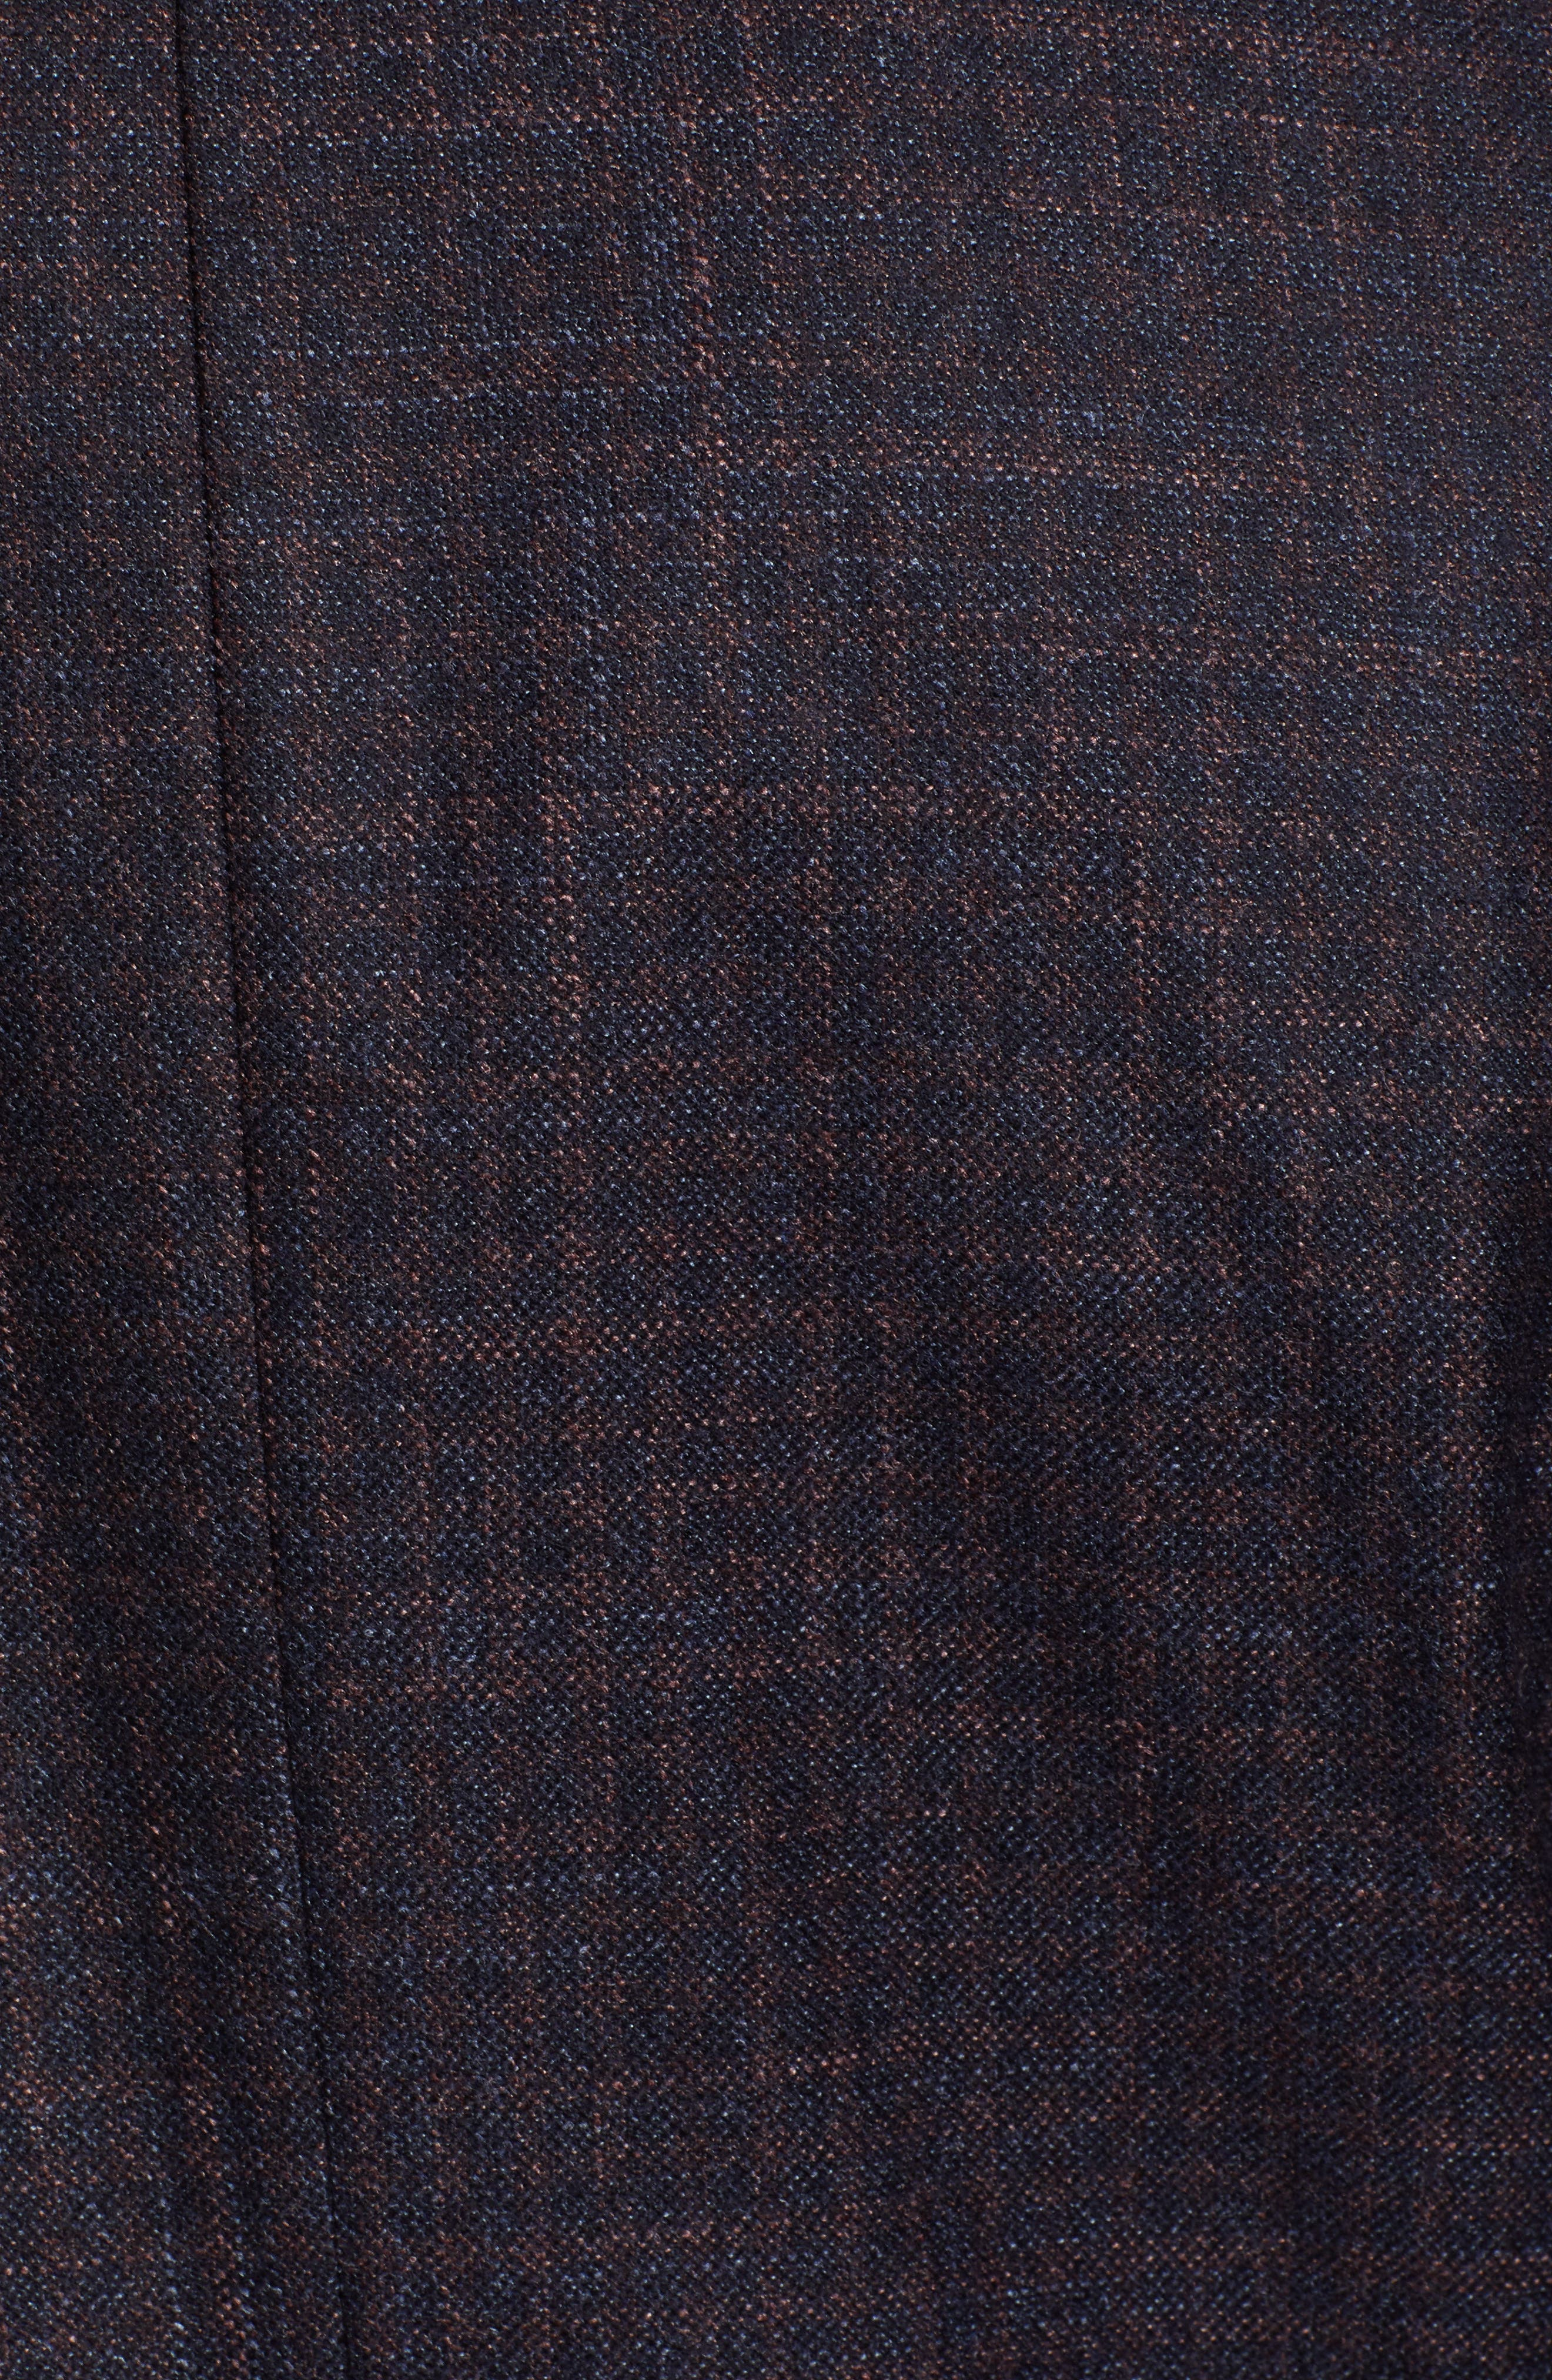 Classic Fit Wool Blazer,                             Alternate thumbnail 6, color,                             NAVY/ BERRY